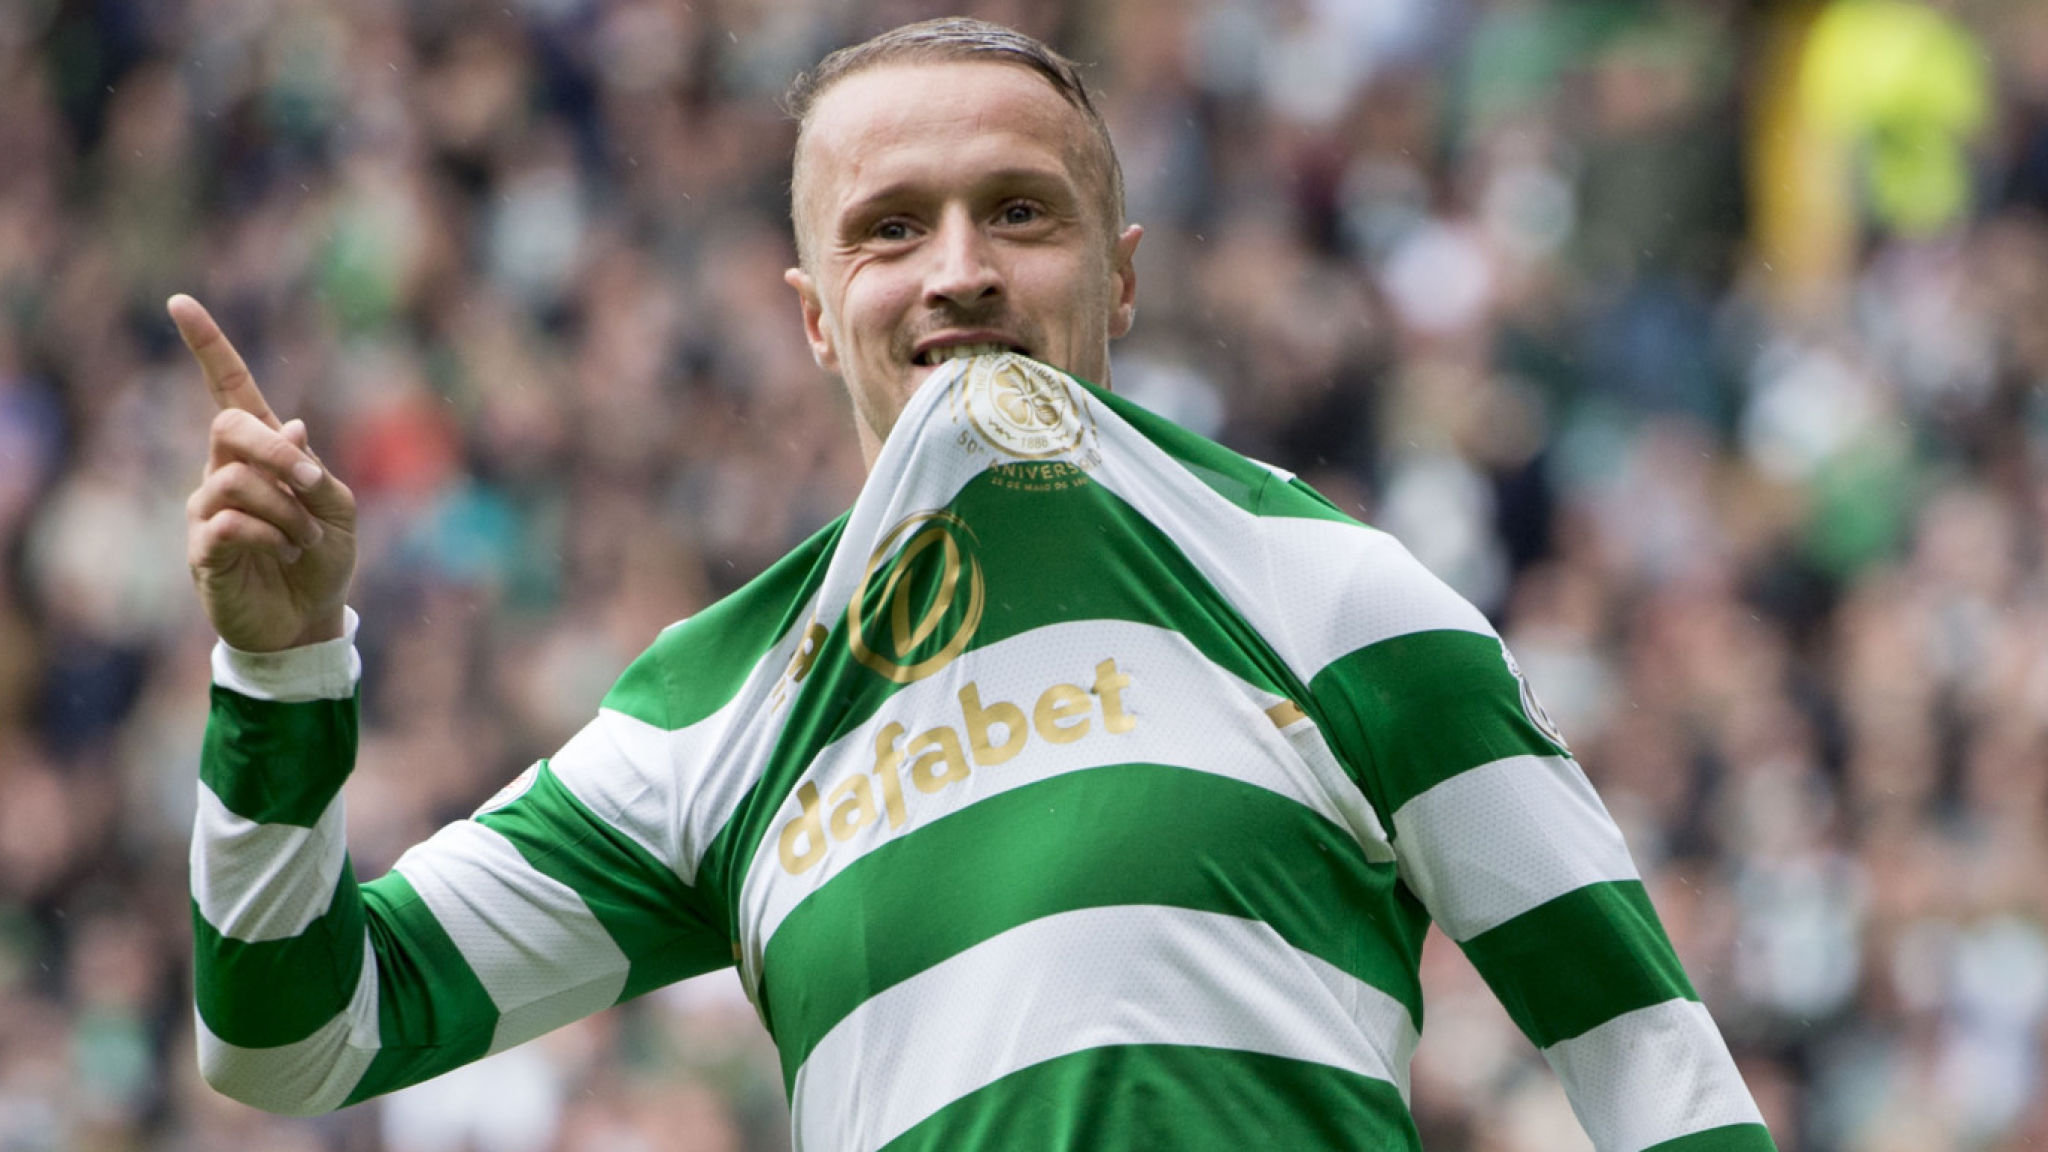 Scotsman Leigh Griffiths celebrates after scoring a goal for Celtic.